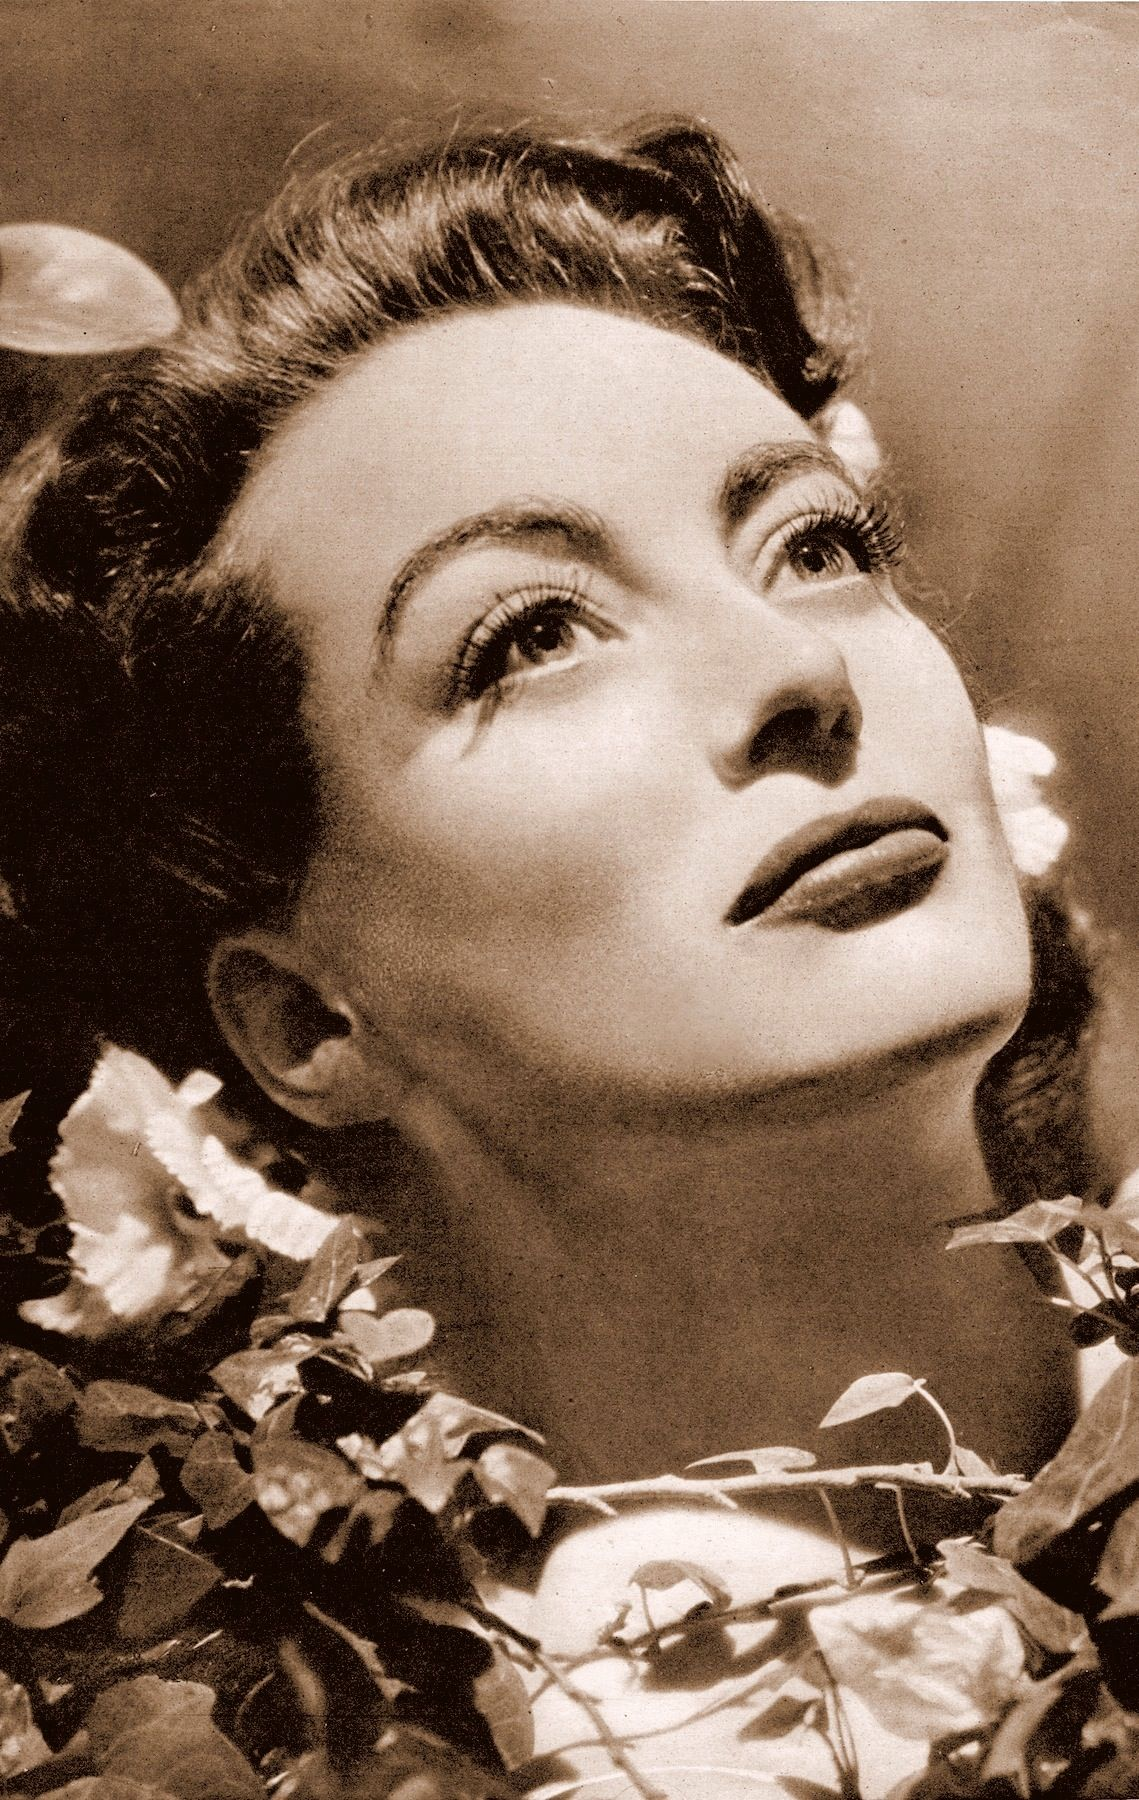 JOAN CRAWFORD pin-up shot (detail) by GEORGE HURRELL in THE SKETCH April 3 1946 vintage clipping. Joan had just won the best actress oscar for Mildred Pierce (1945) (please follow minkshmink on pinterest)